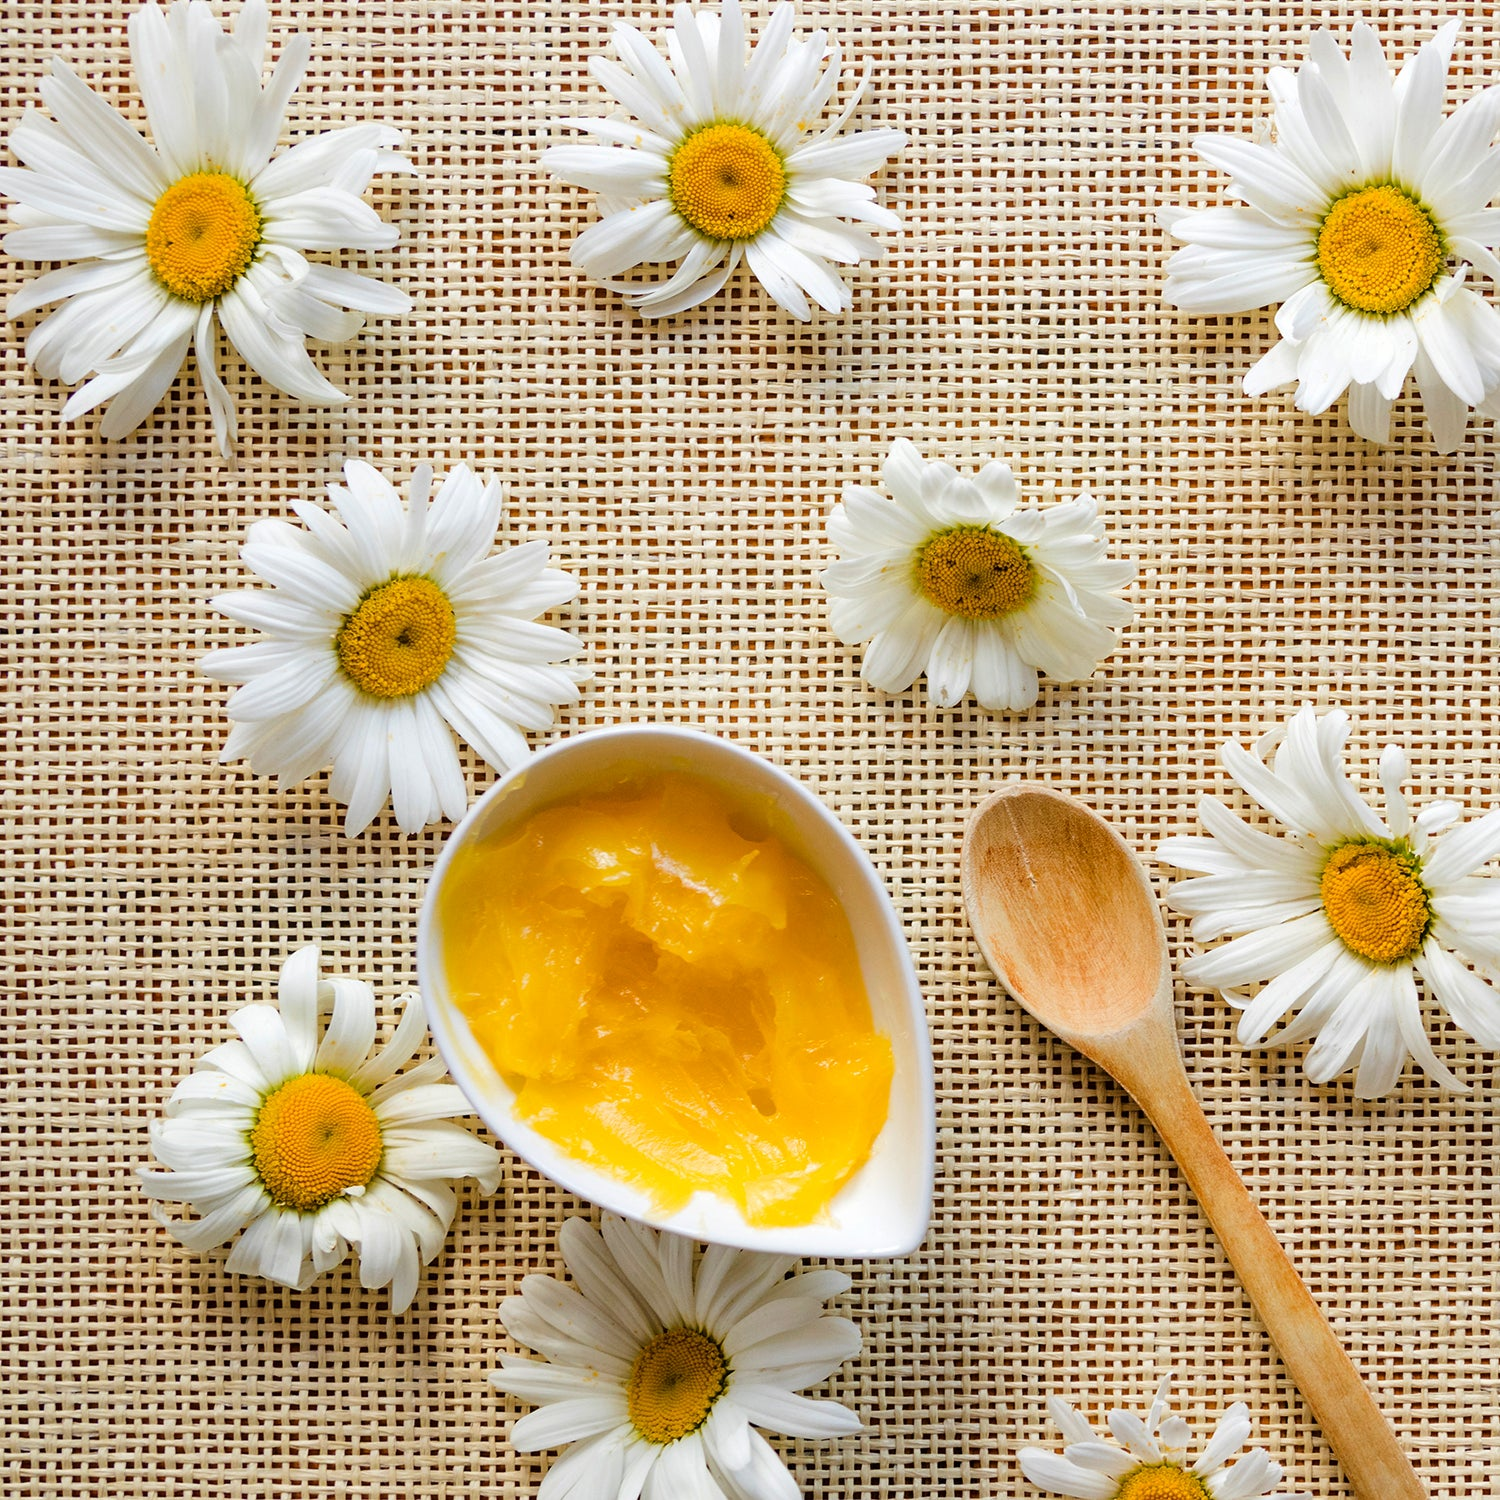 All About Ghee and How To Make it at Home